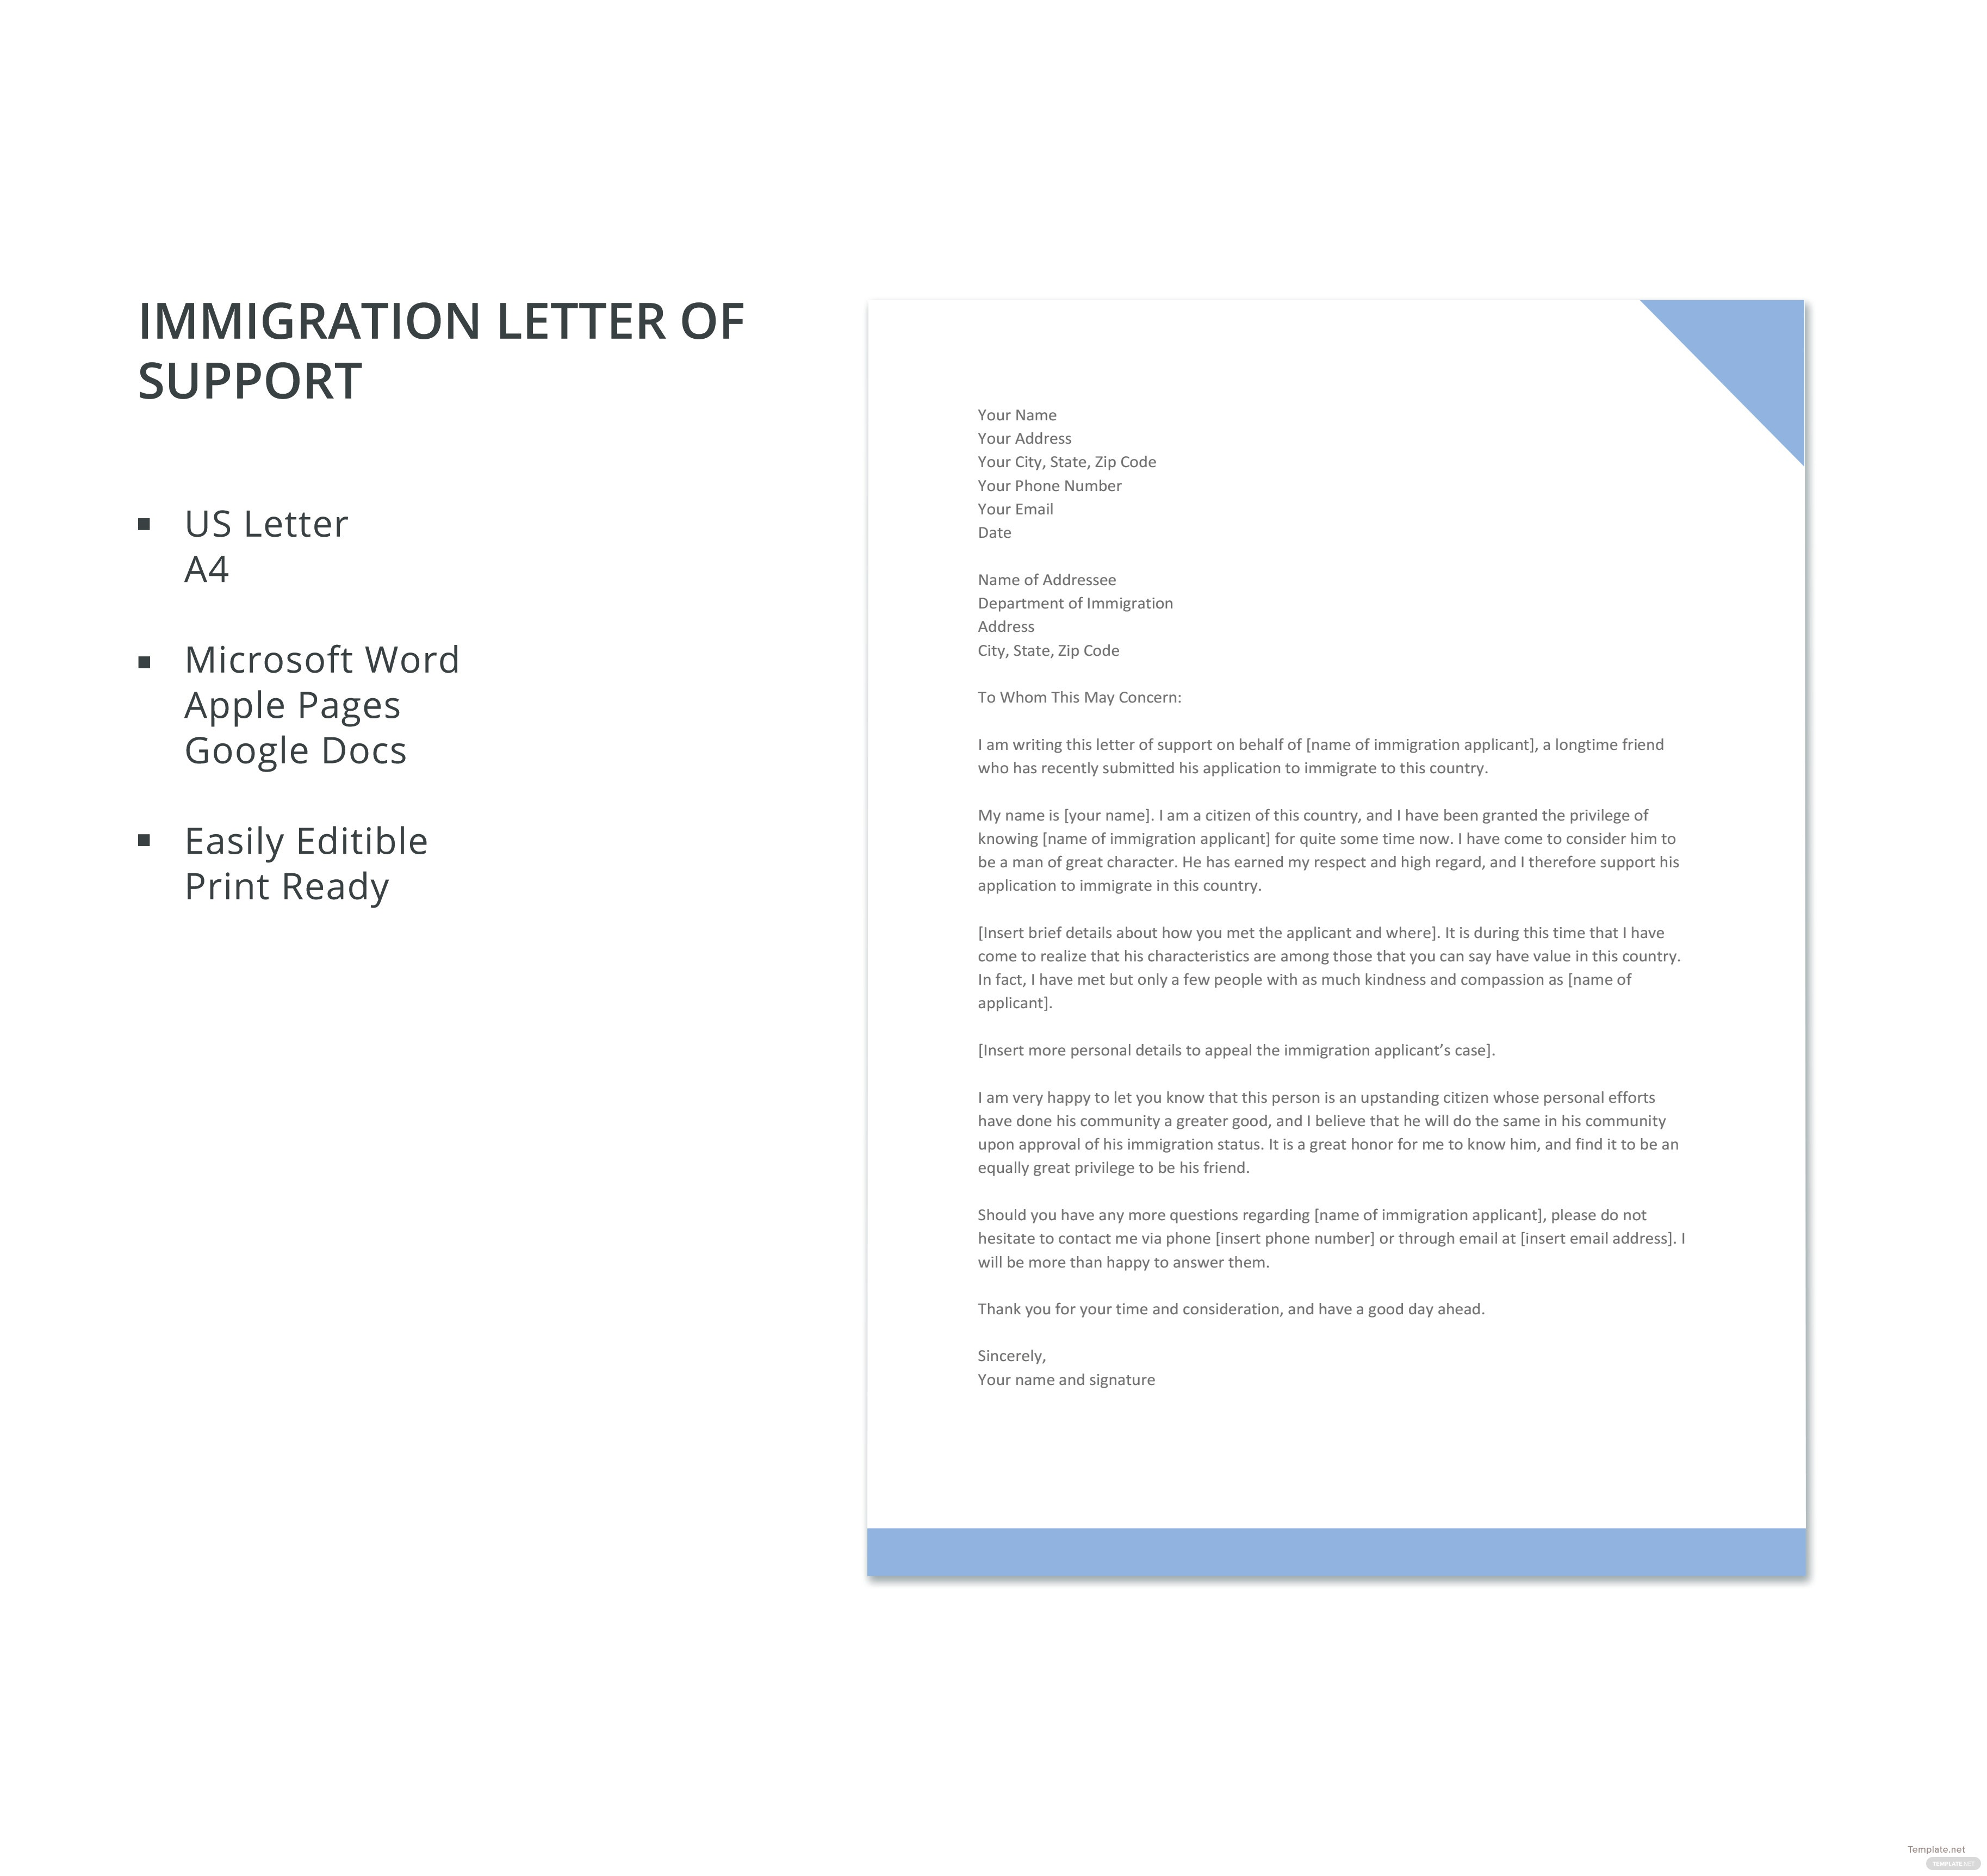 immigration letter of support template in microsoft word